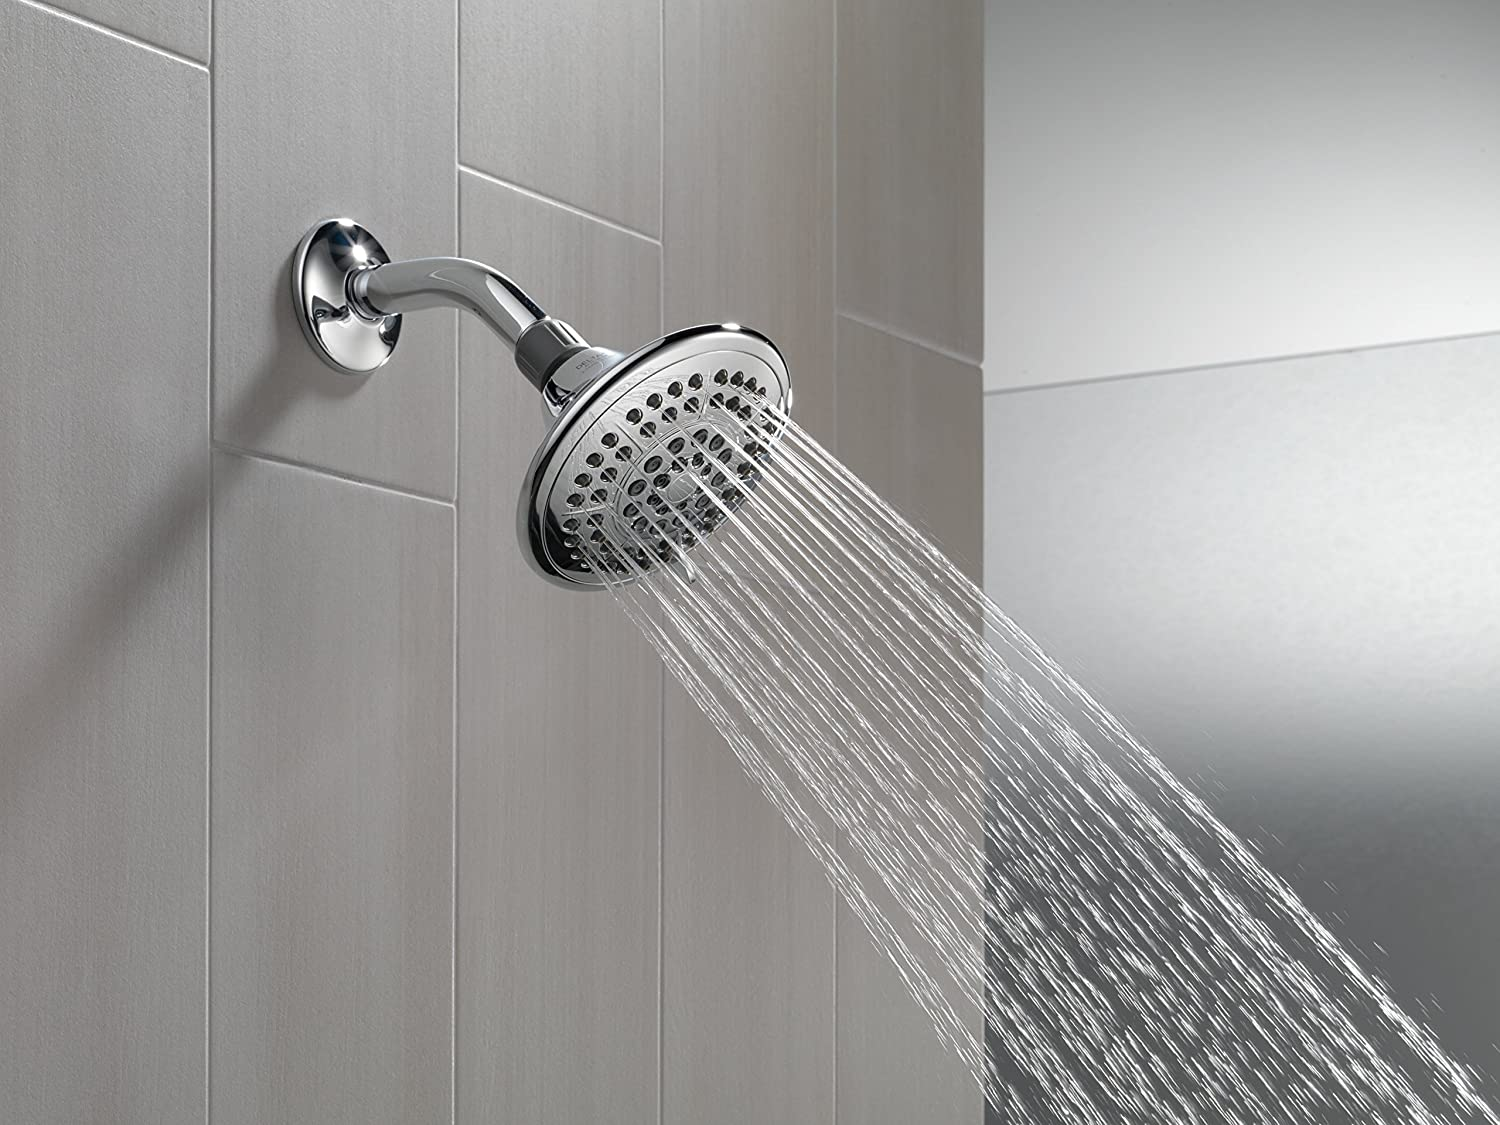 Image result for Shower head